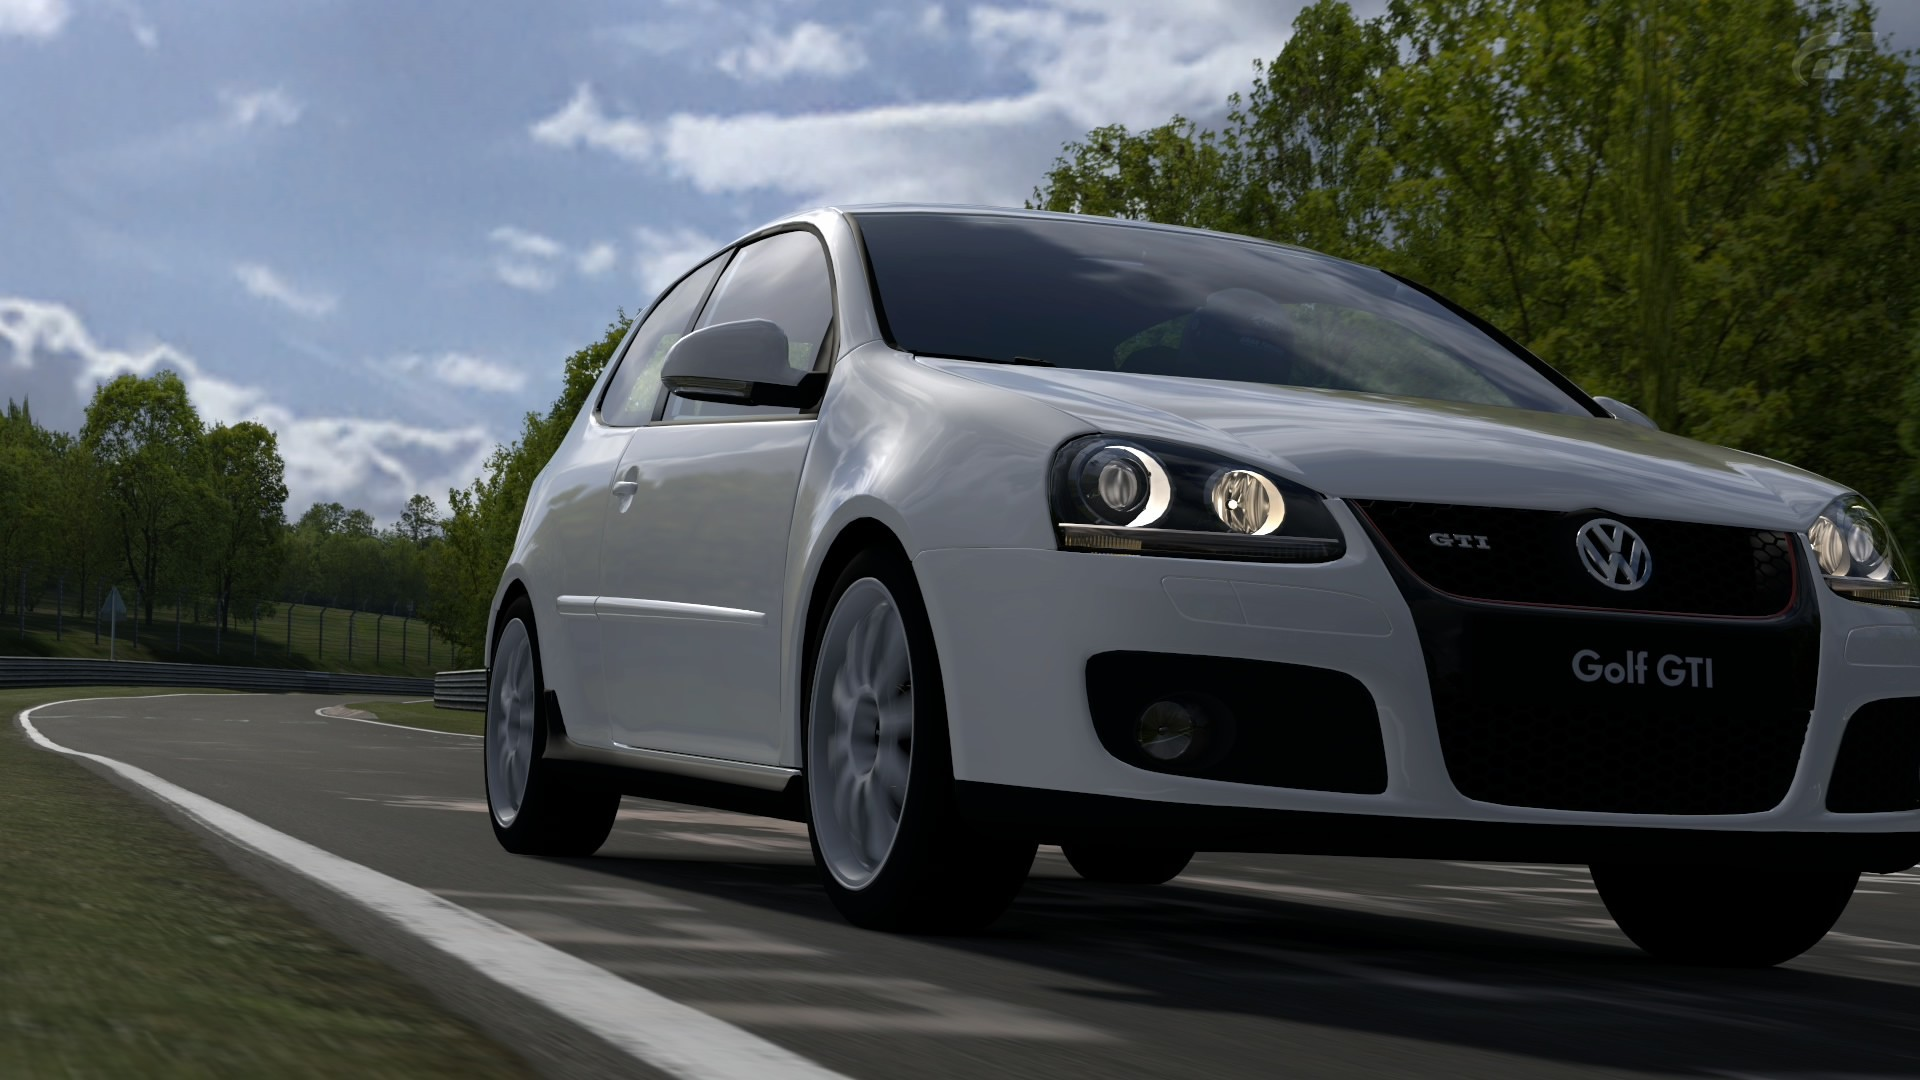 vehicles Volkswagen Golf gran HD Wallpaper